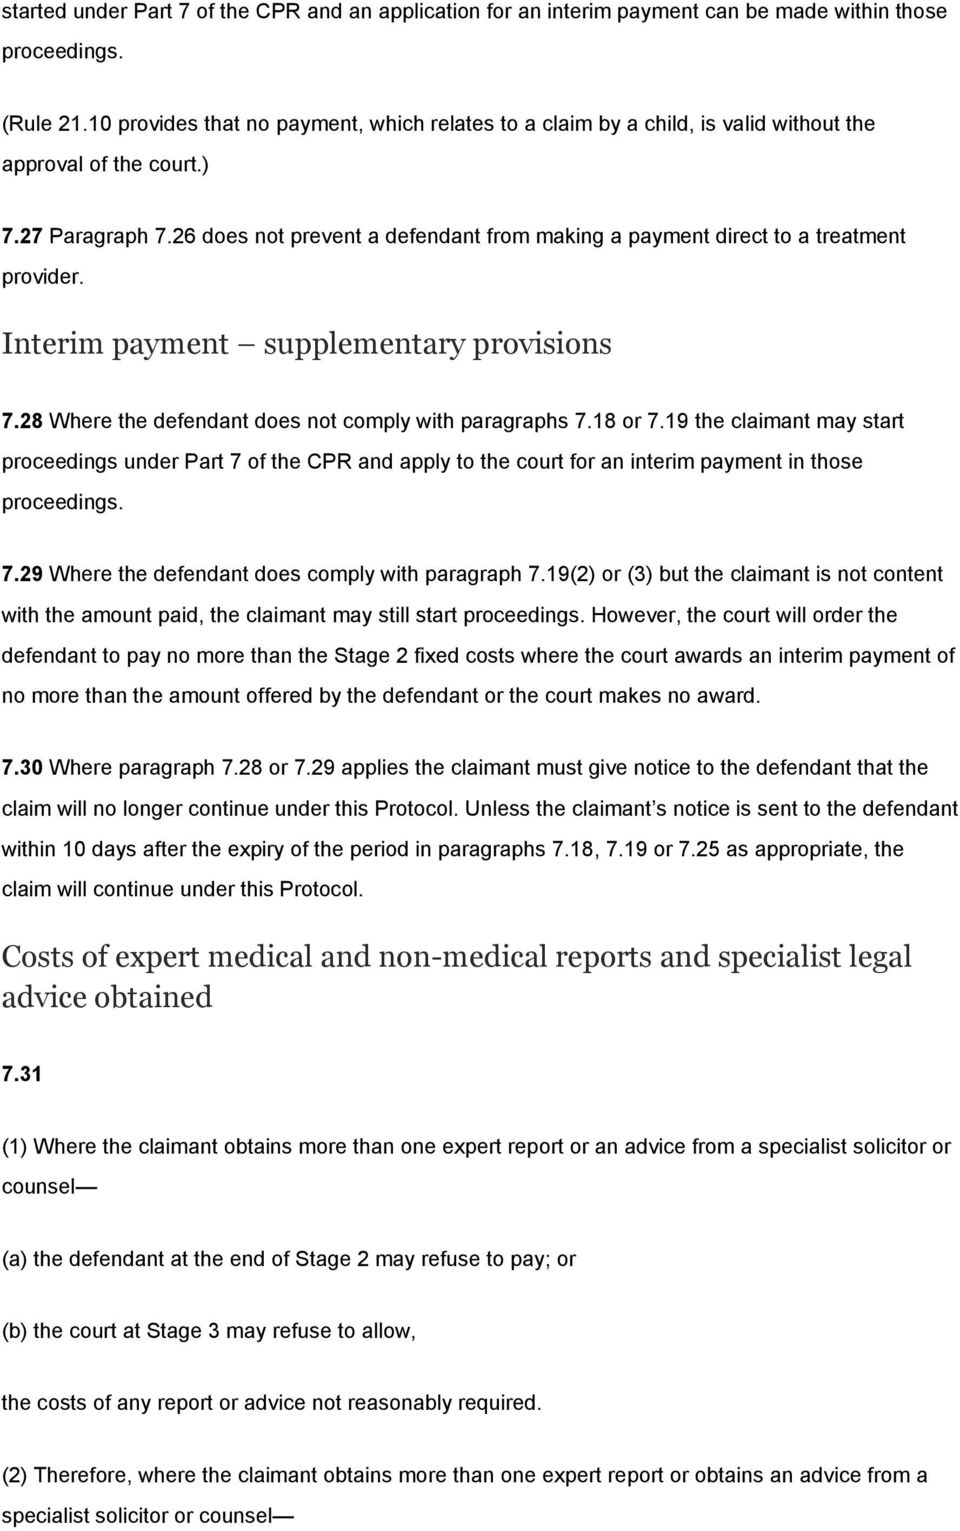 26 does not prevent a defendant from making a payment direct to a treatment provider. Interim payment supplementary provisions 7.28 Where the defendant does not comply with paragraphs 7.18 or 7.